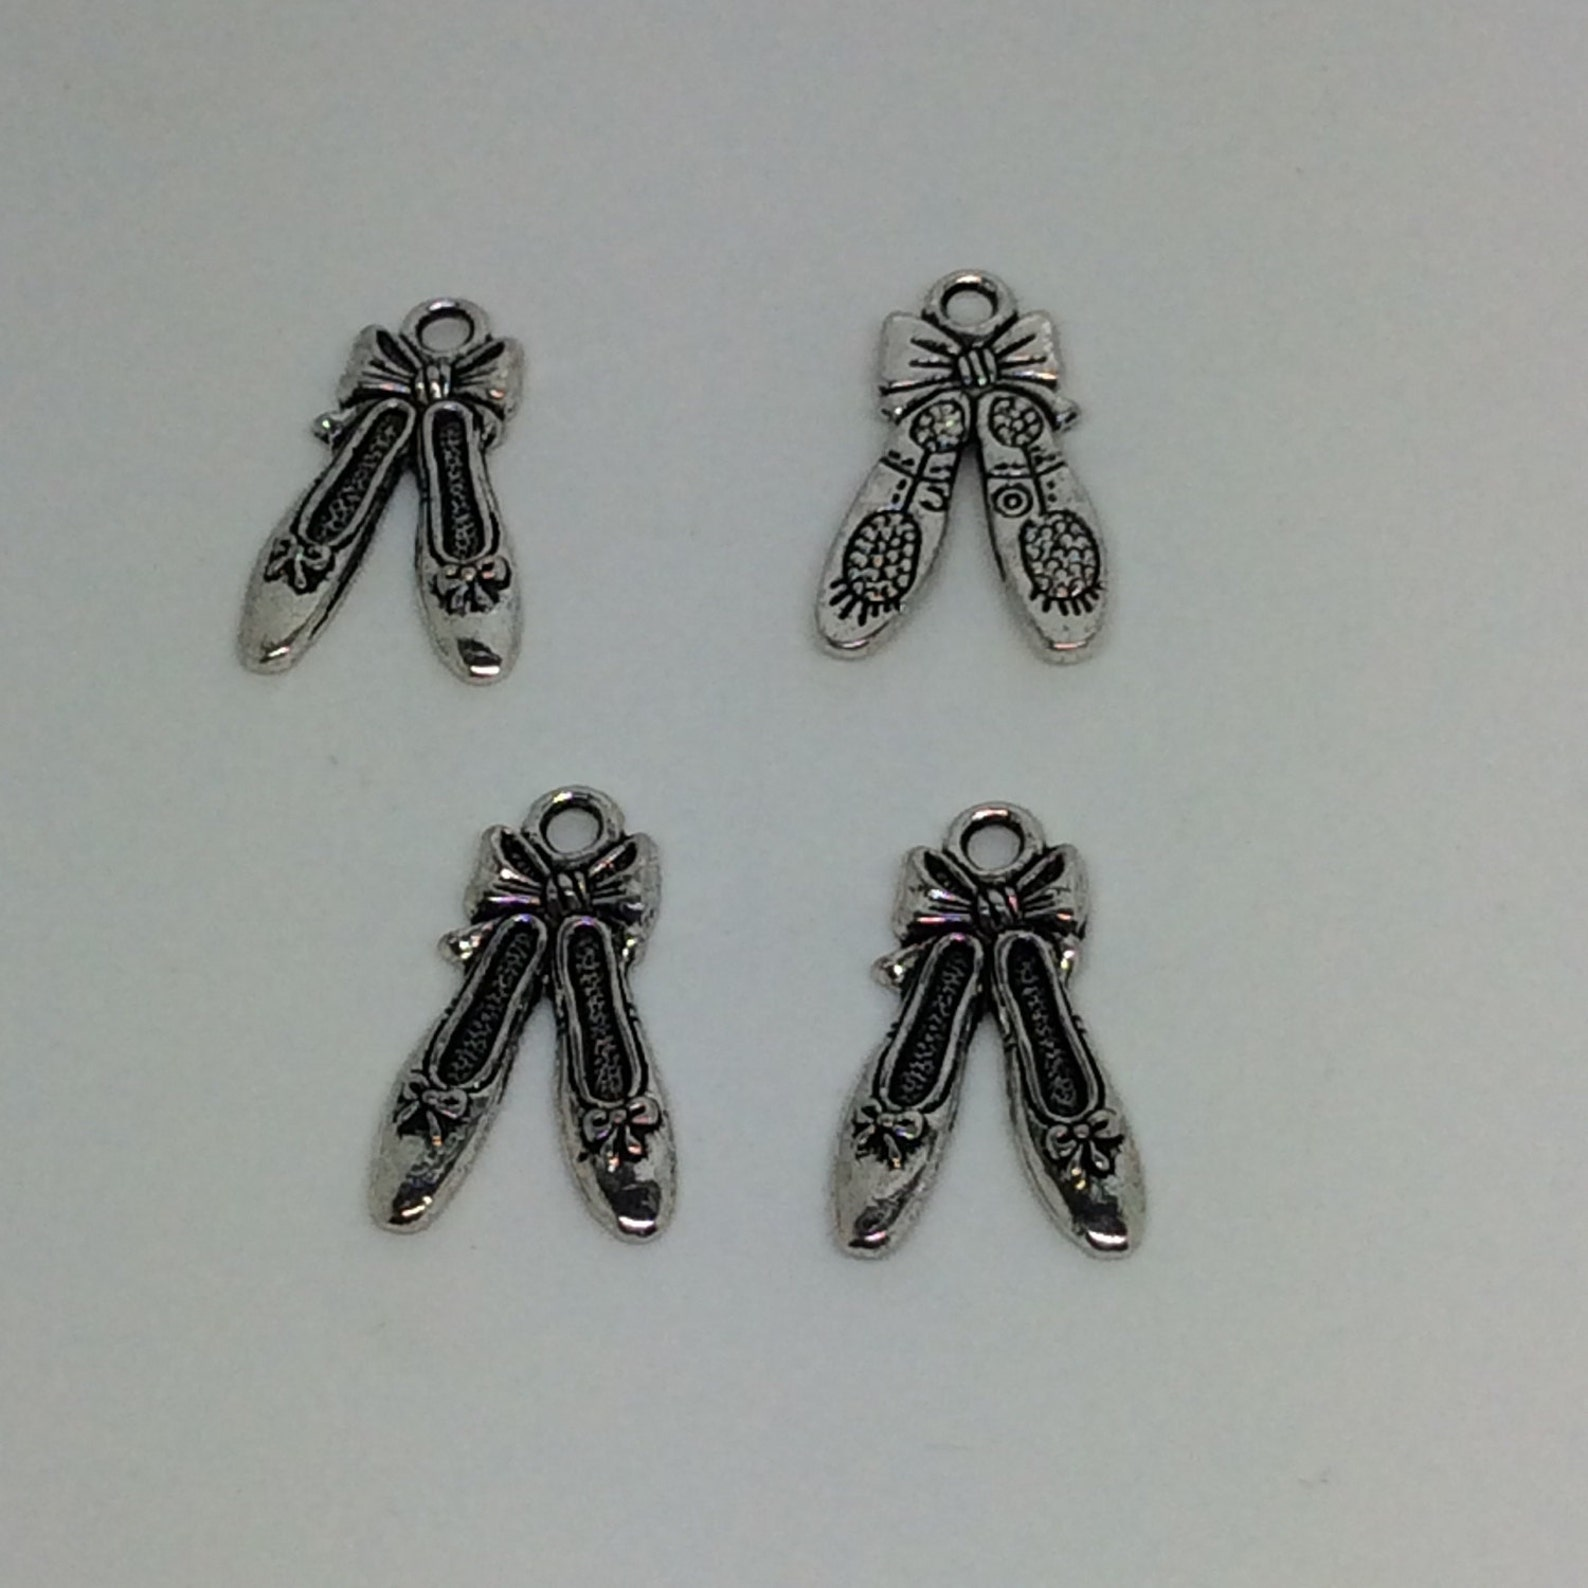 10 ballet shoes charms- 21x13 mm - antique tibetan silver tone- double sided charm- ballet theme ref. 482